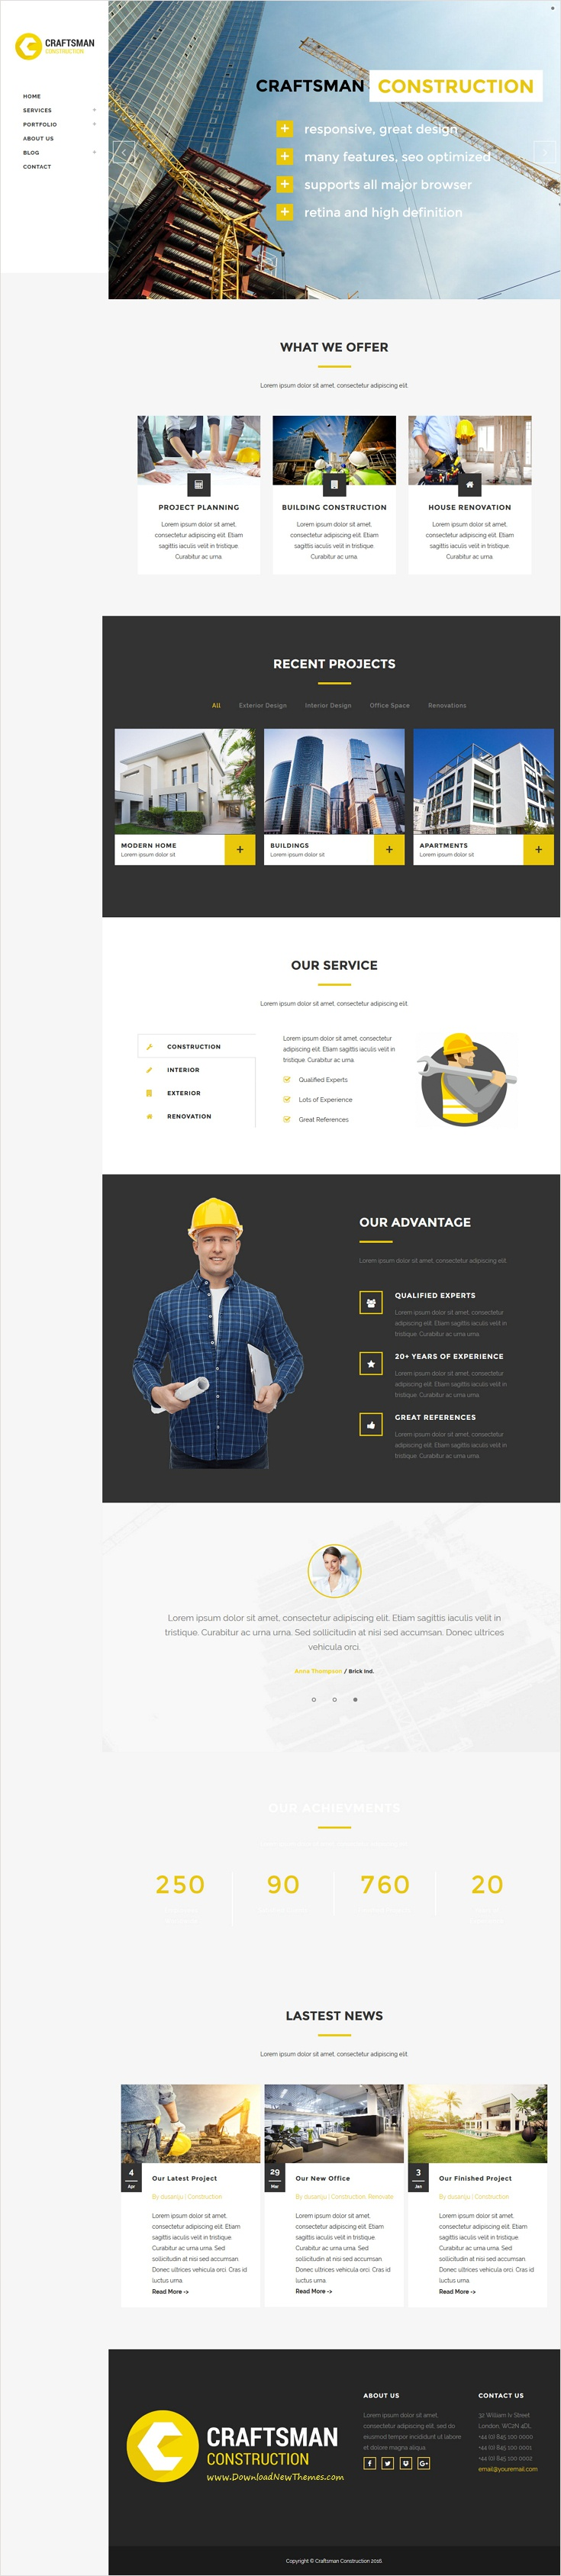 Craftsman Construction is wonderful responsive 2 in 1 WordPress